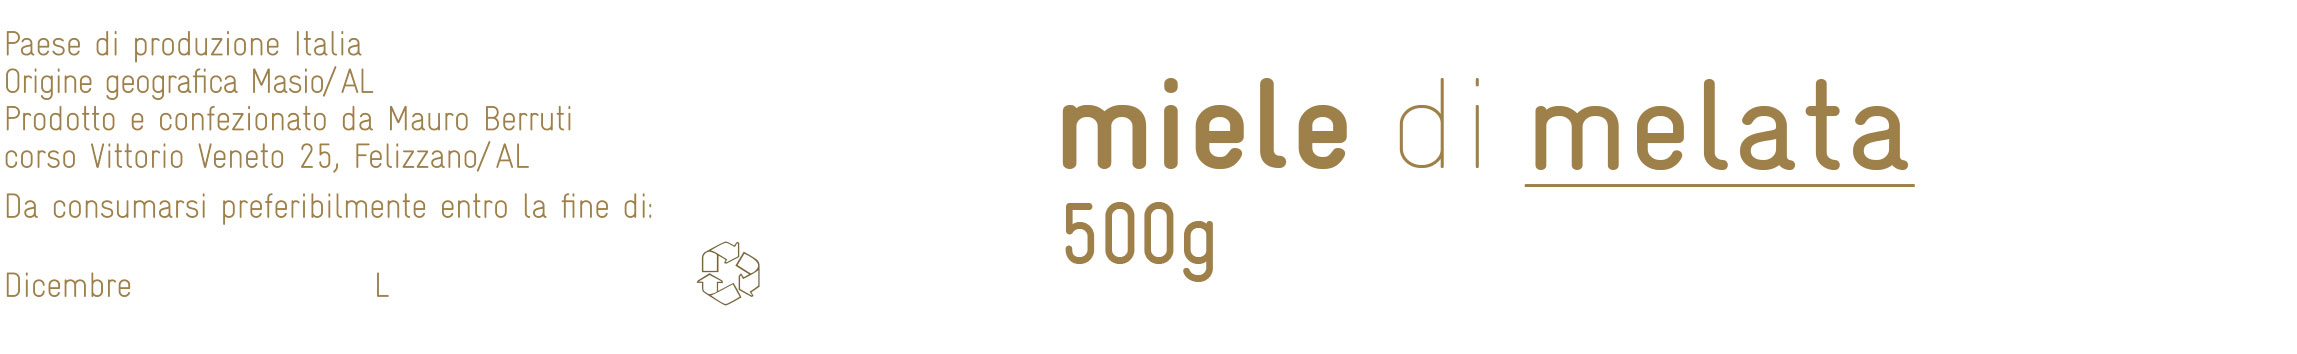 Food packaging - Etichetta Miele - Melata